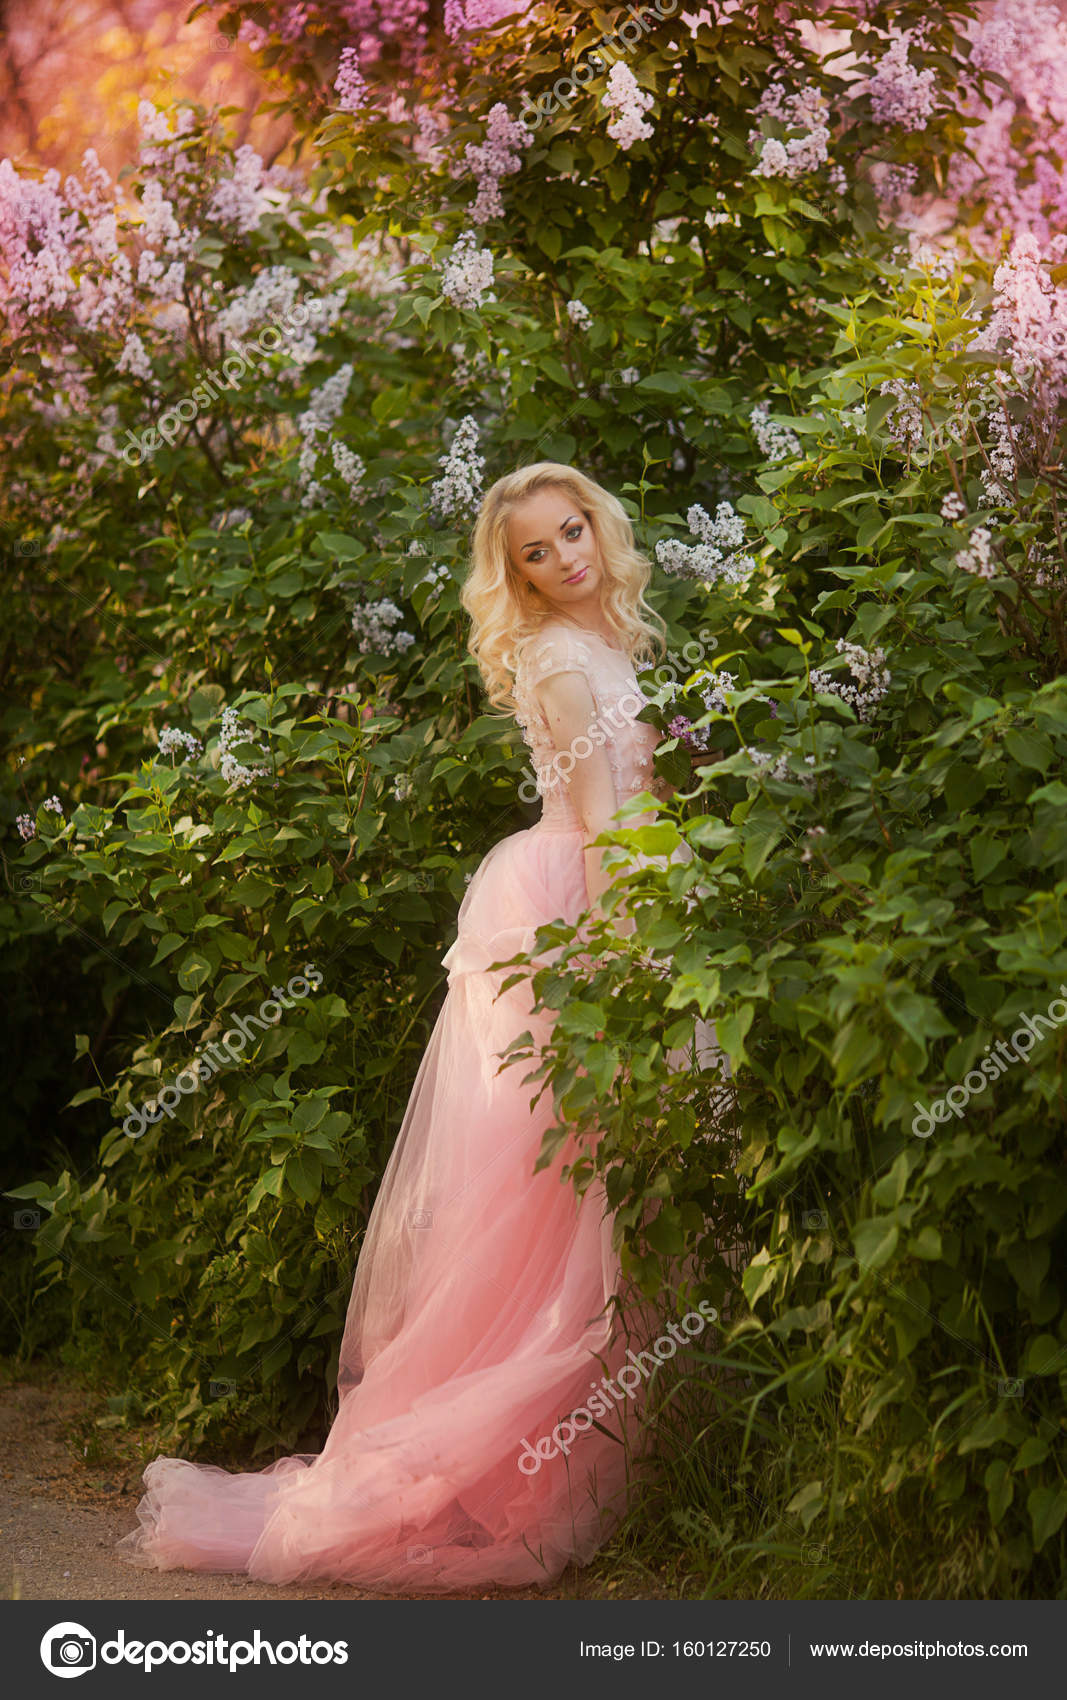 Beautiful woman enjoying lilac garden young woman with flowers in a girl in a lavender pink garden photo by olenakucher izmirmasajfo Image collections